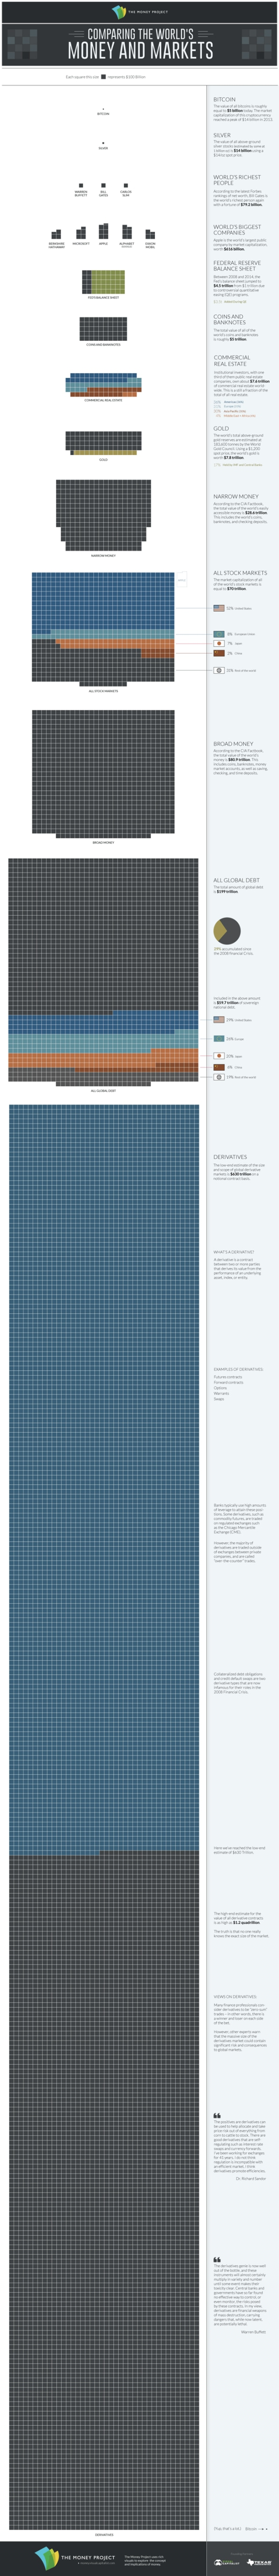 All The Money In World A Single Chart